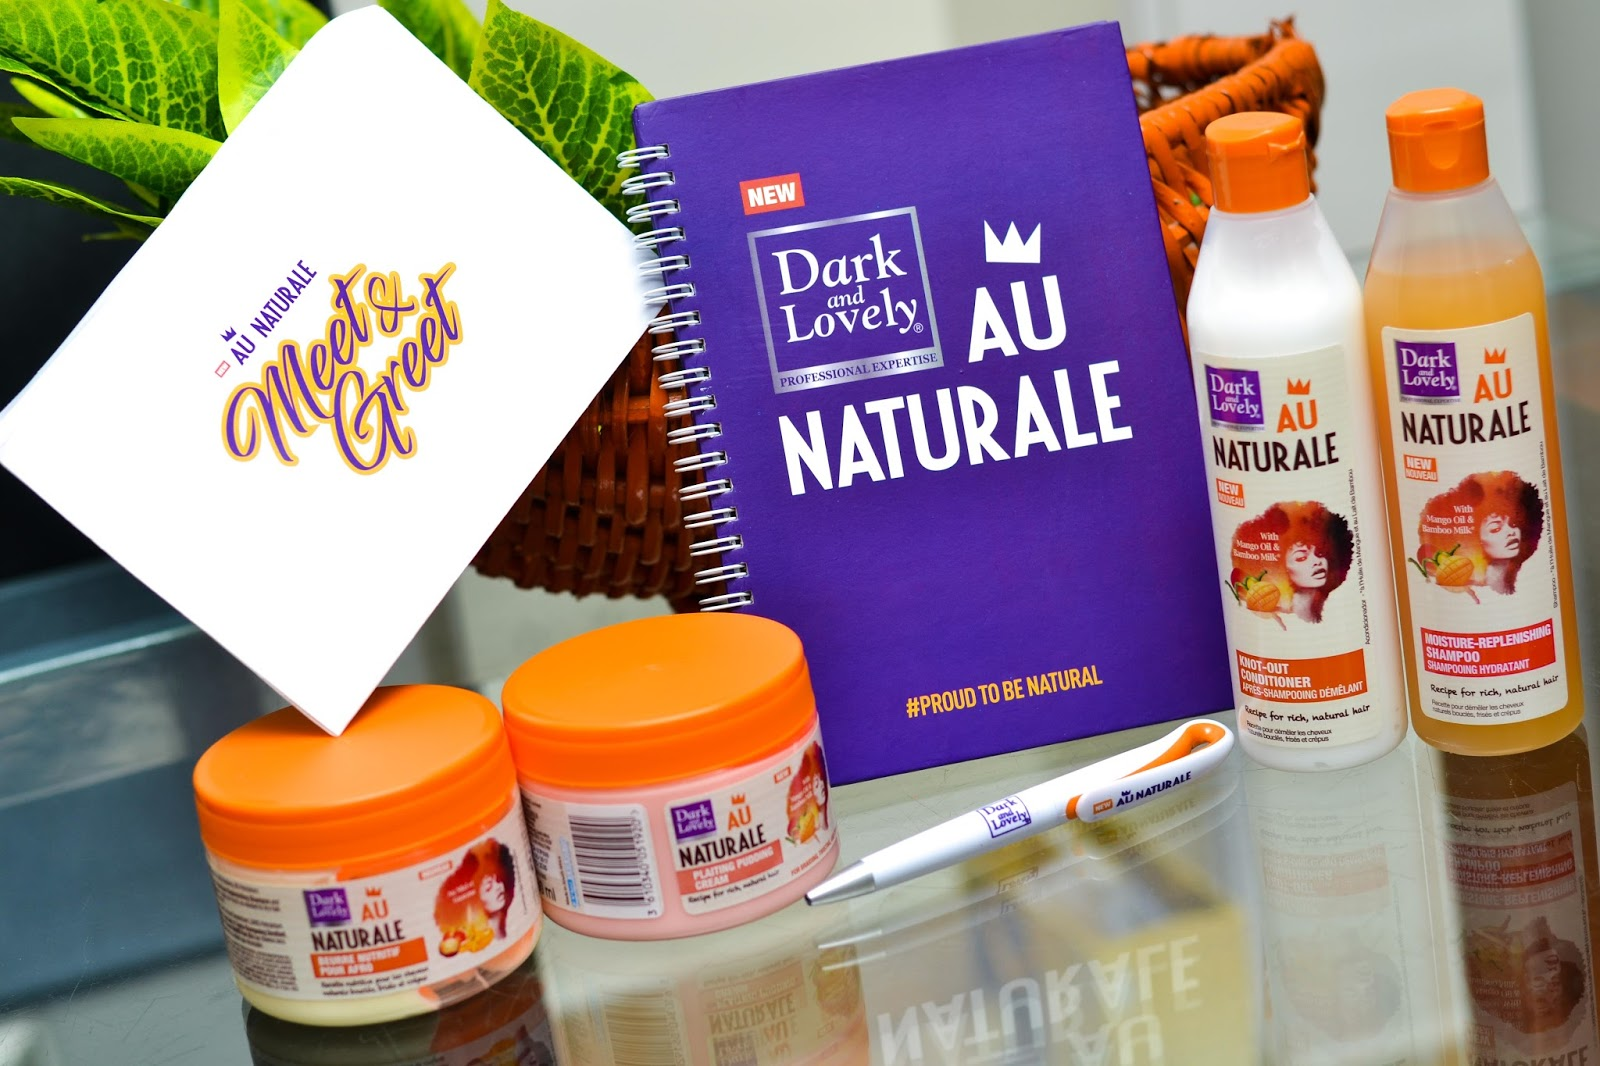 Dark & Lovely Au Naturale Range